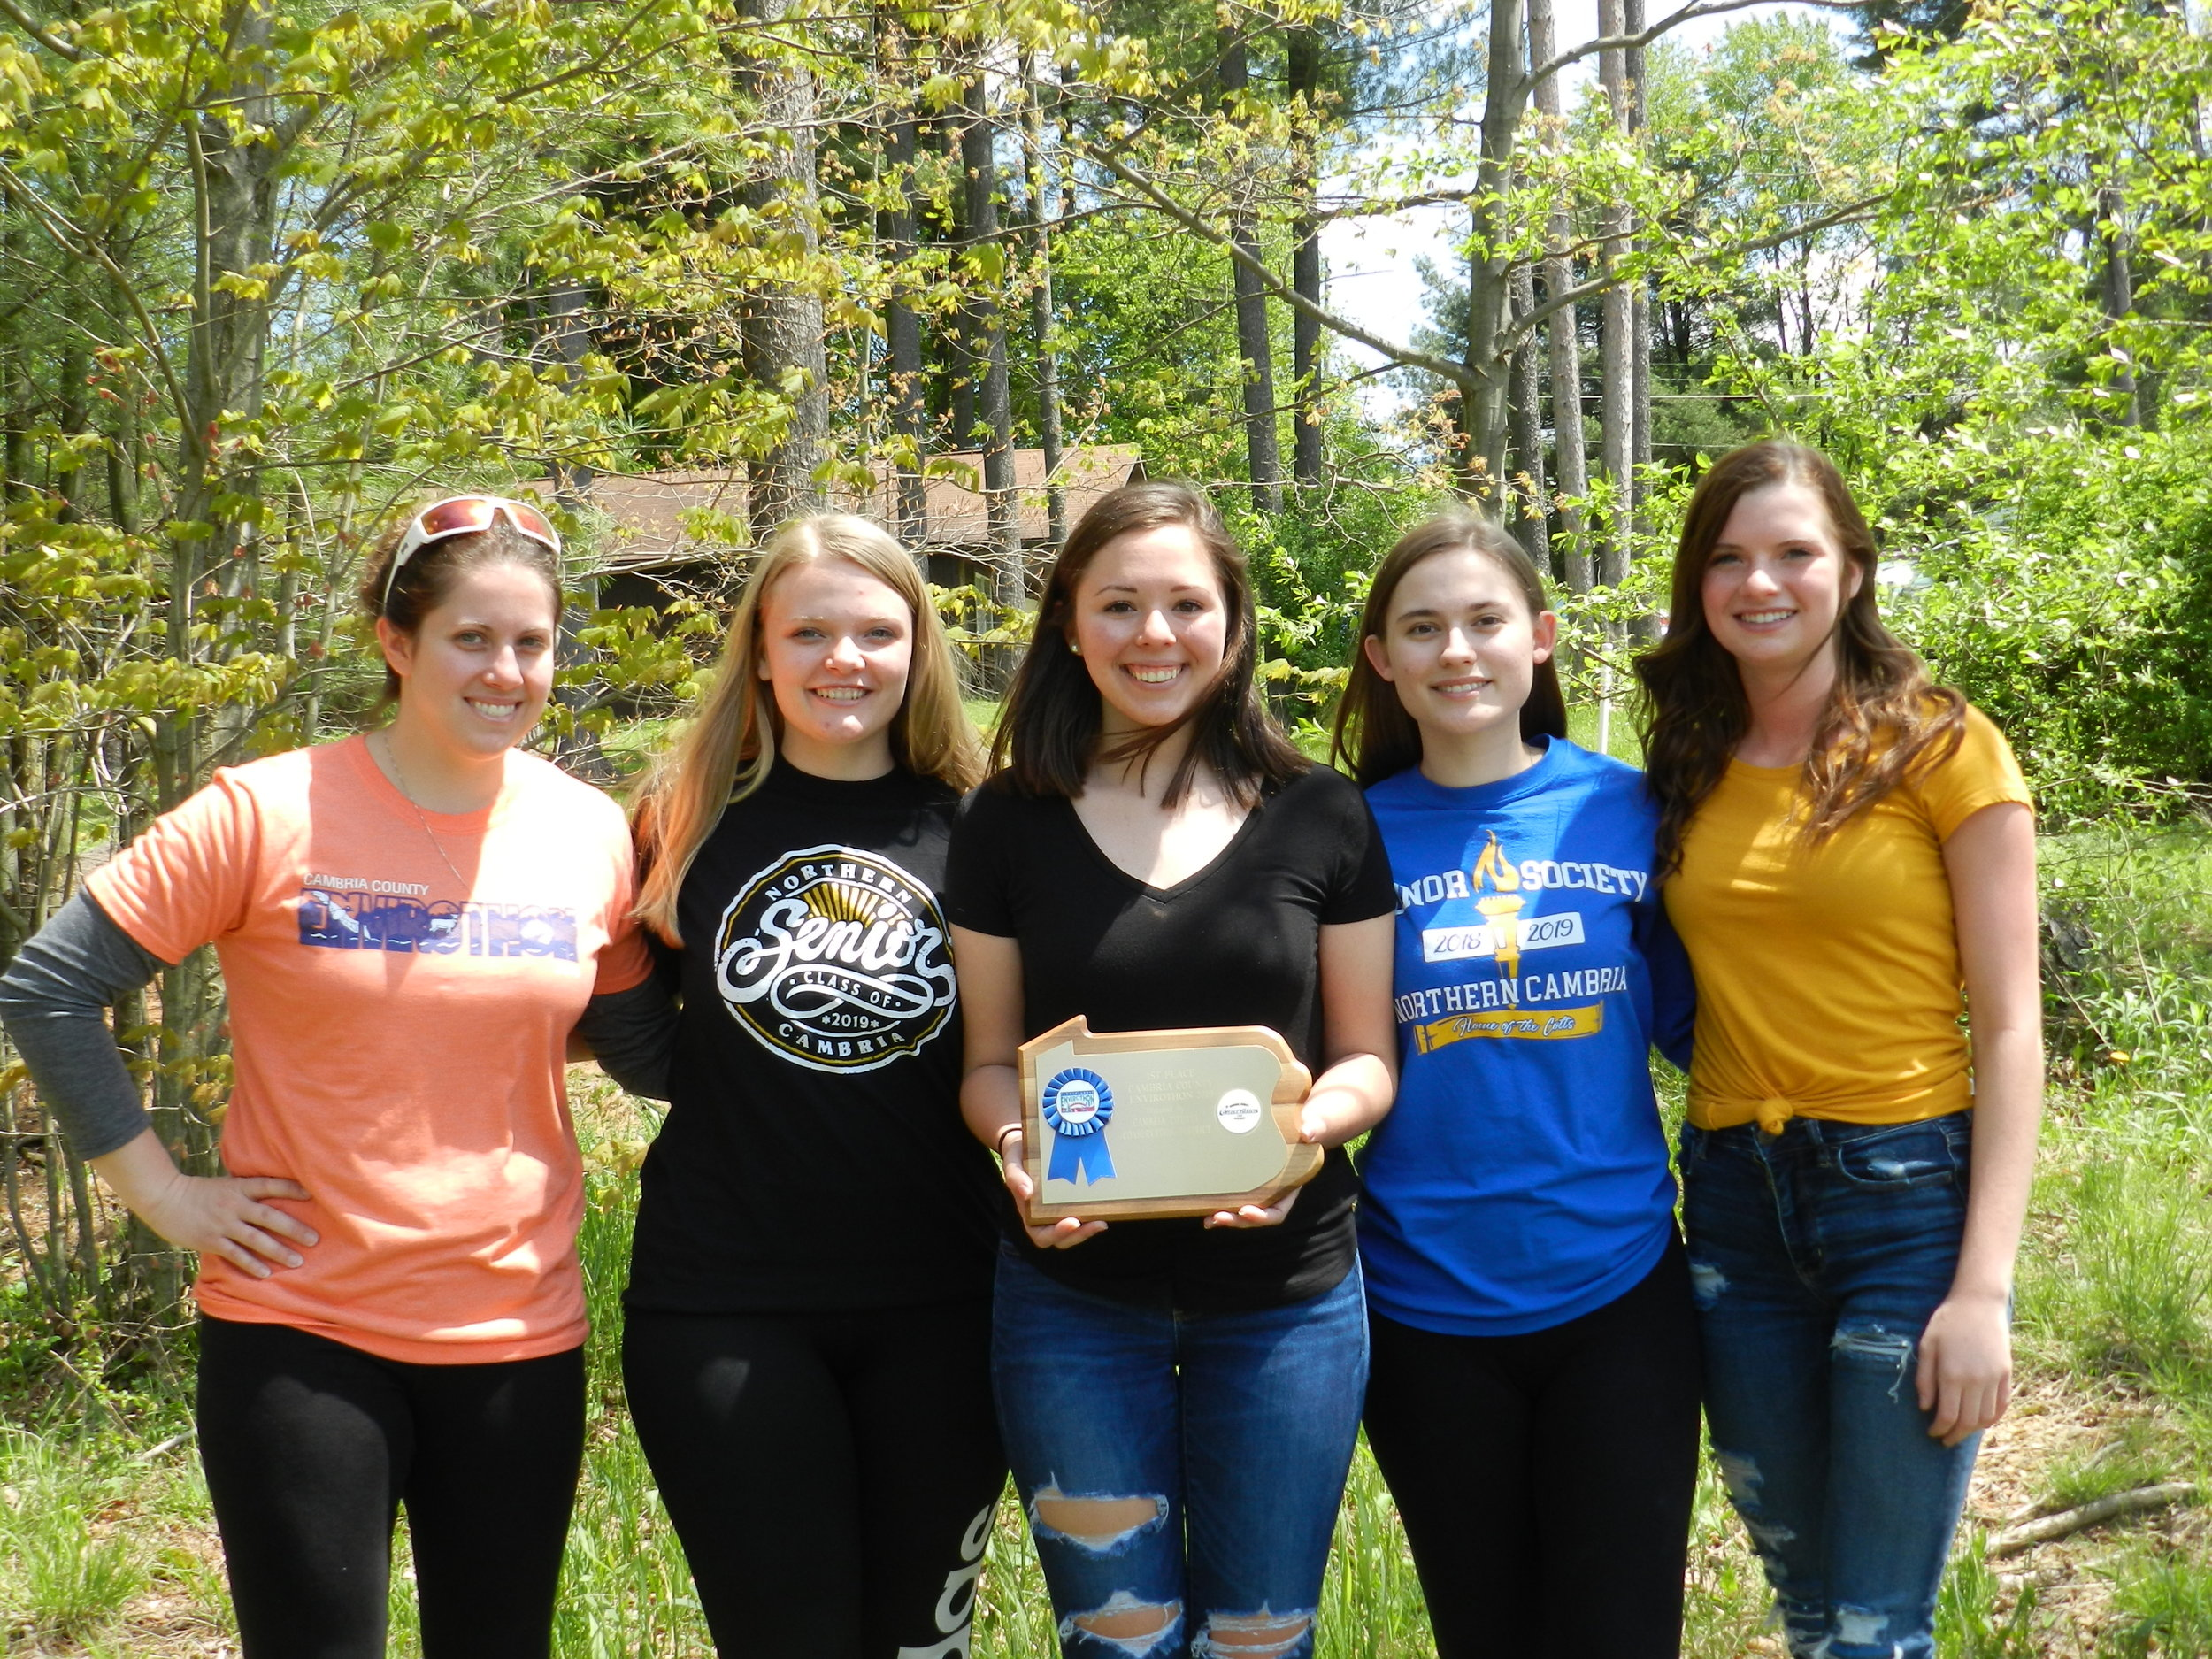 1st Place: Northern Cambria High School   Coach, Marybeth Kerr, Paige Dumm, Taylor Sherry, Danielle Nealen, Abby Strong, Absent from photo: Zach Malicky